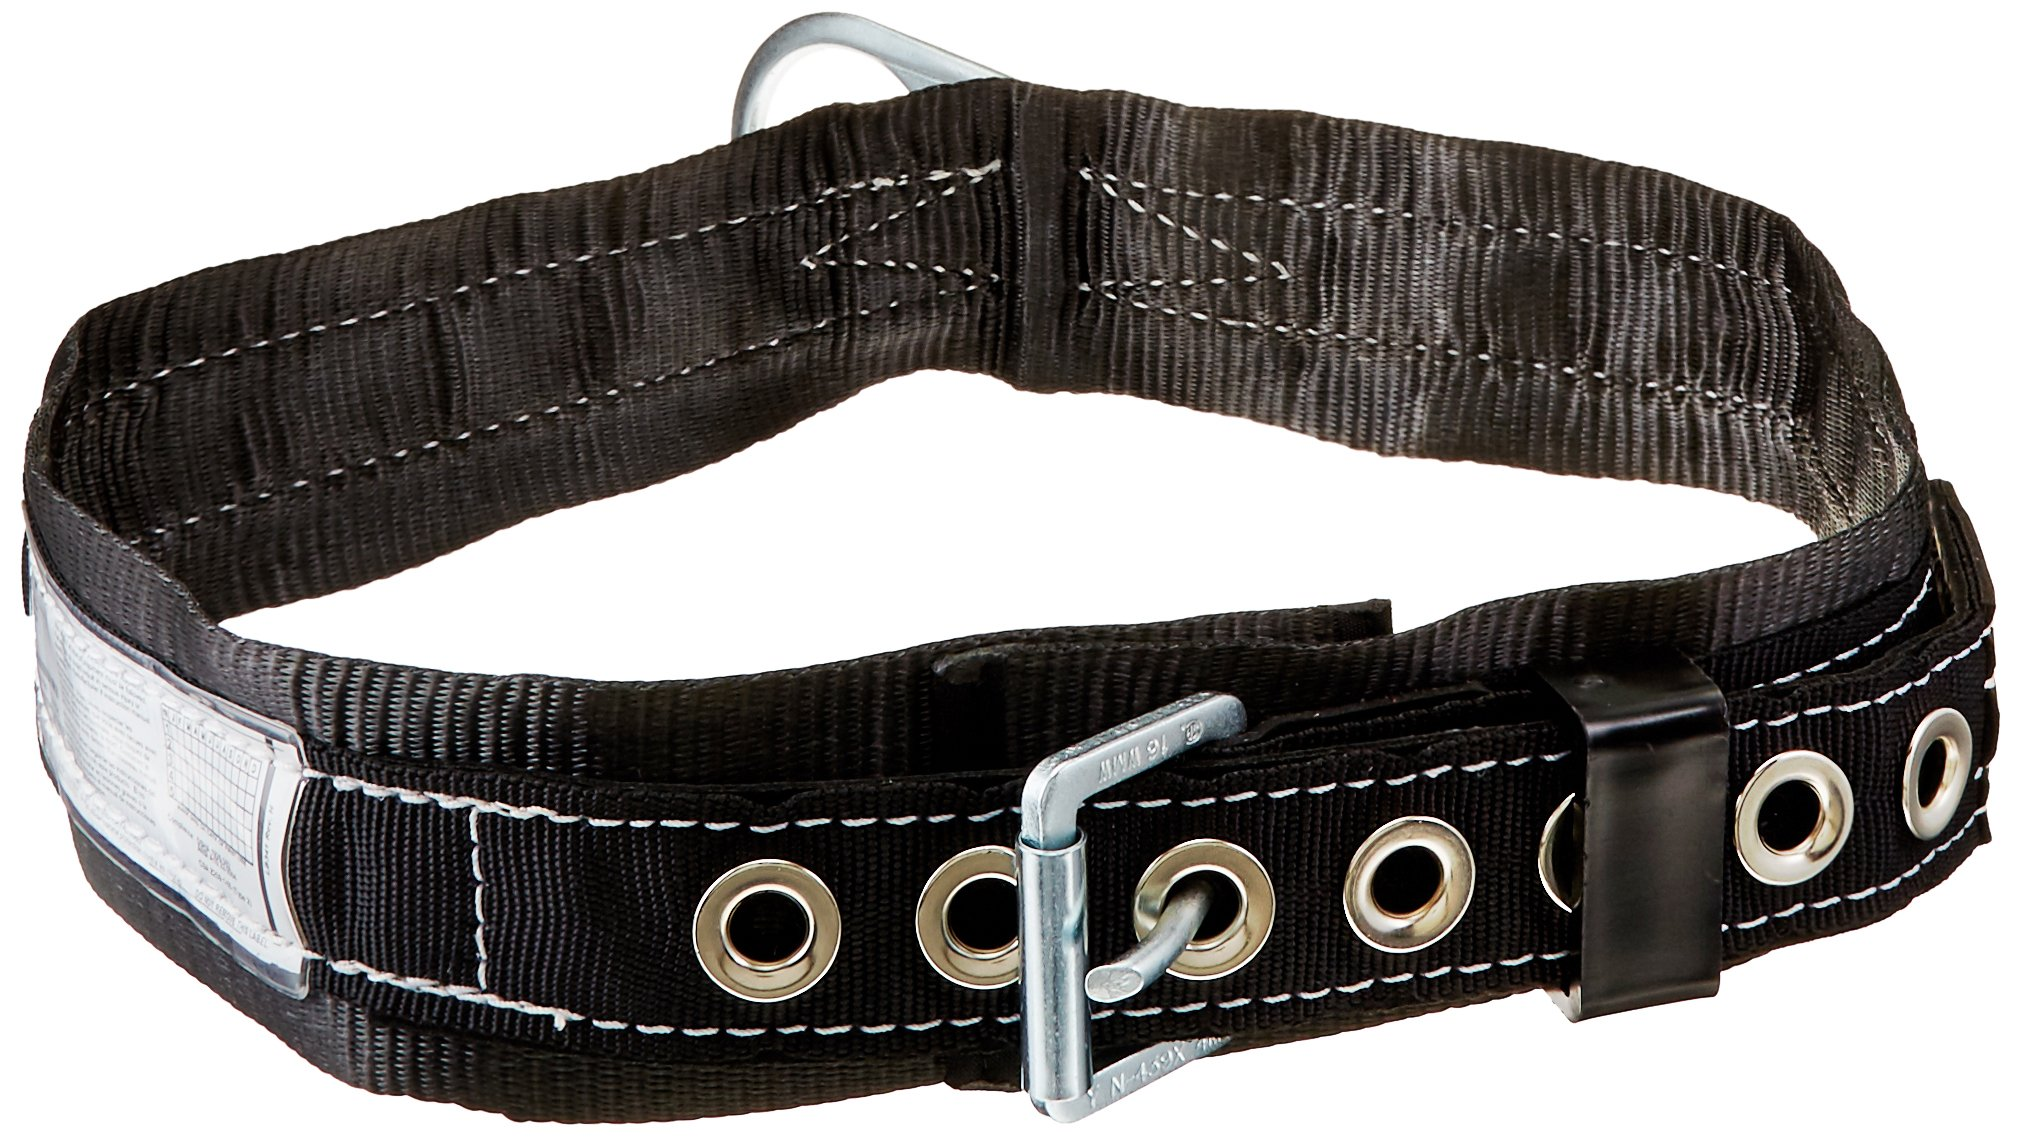 Miller by Honeywell 3NA/XLBK Single D-Ring Safety Body Belt with 1-3/4-Inch Webbing and 3-Inch Back Pad, X-Large, Black by Honeywell